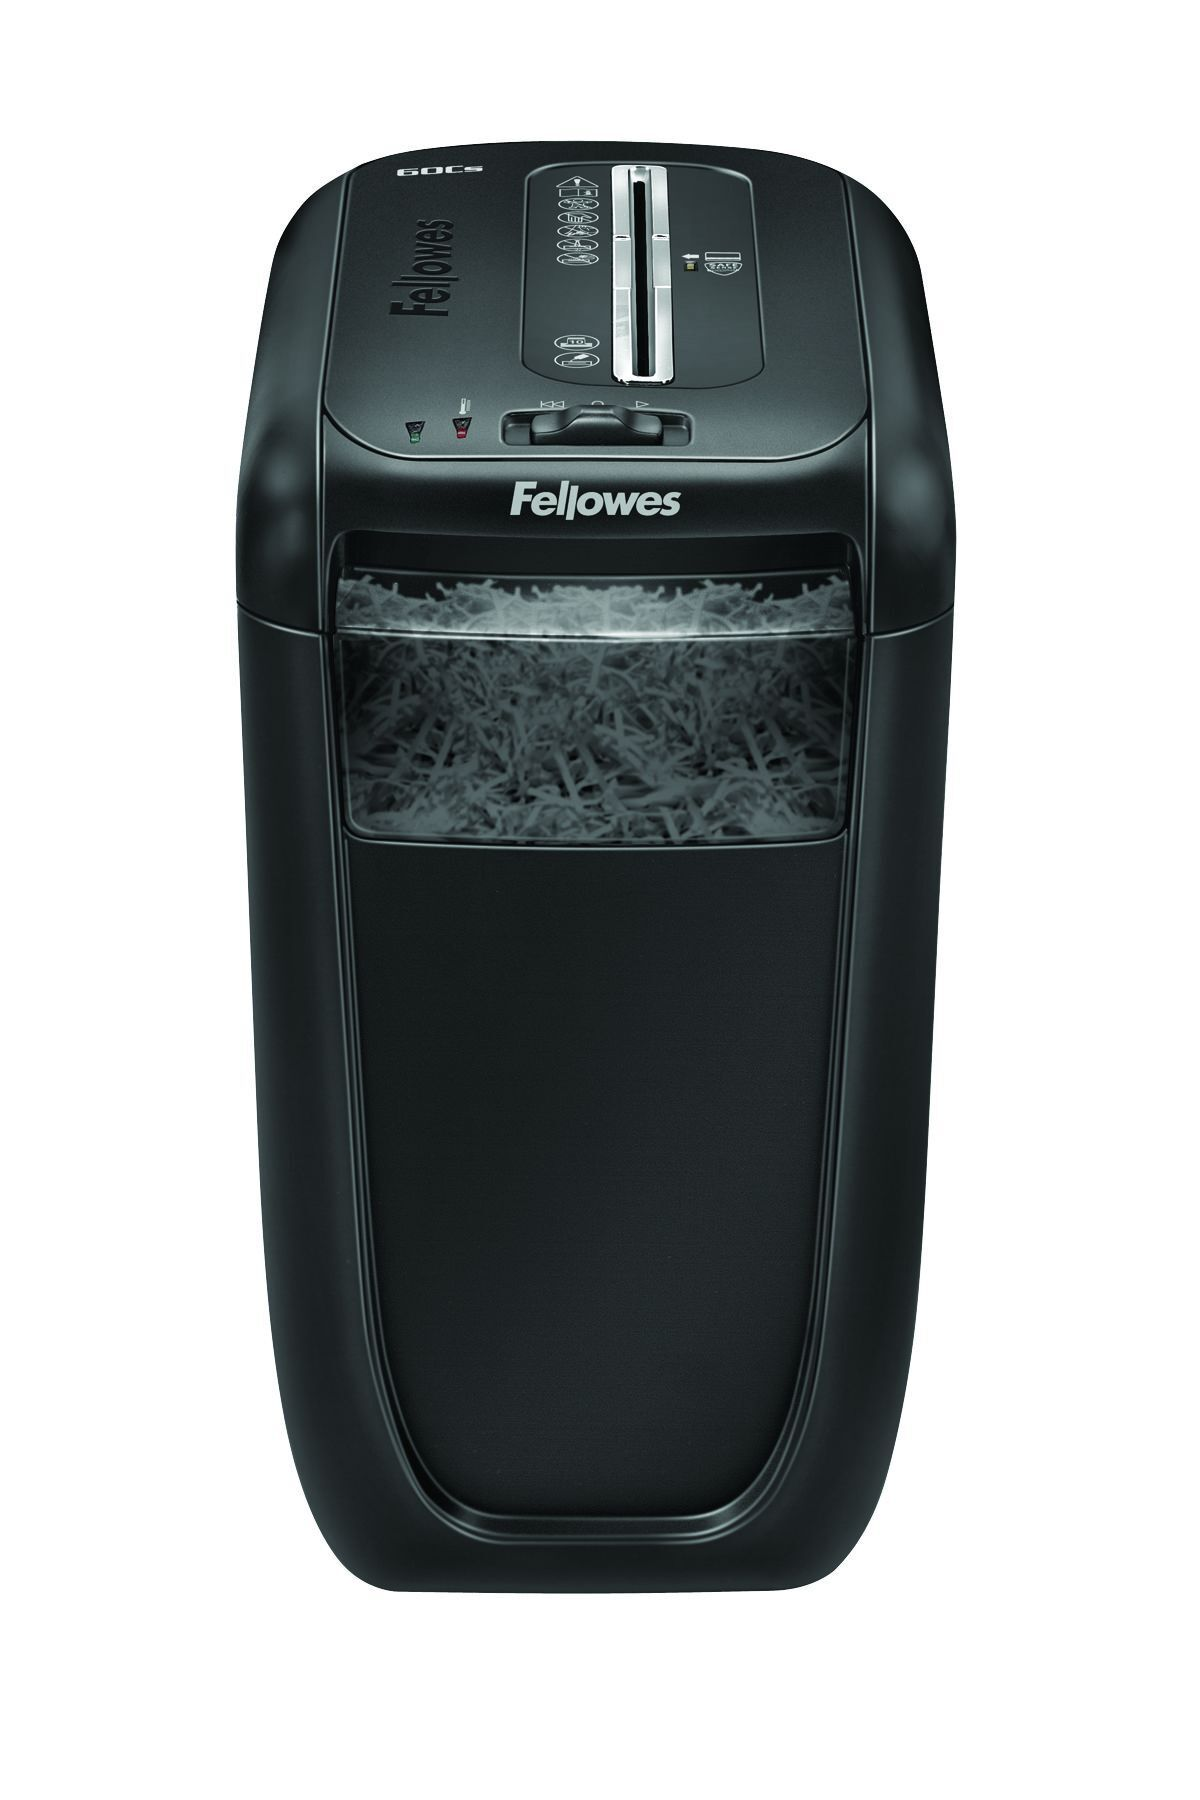 Fellowes Powershred 60CS - destructeur de documents coupe croisée - 10 feuilles - Corbeille 22 litres